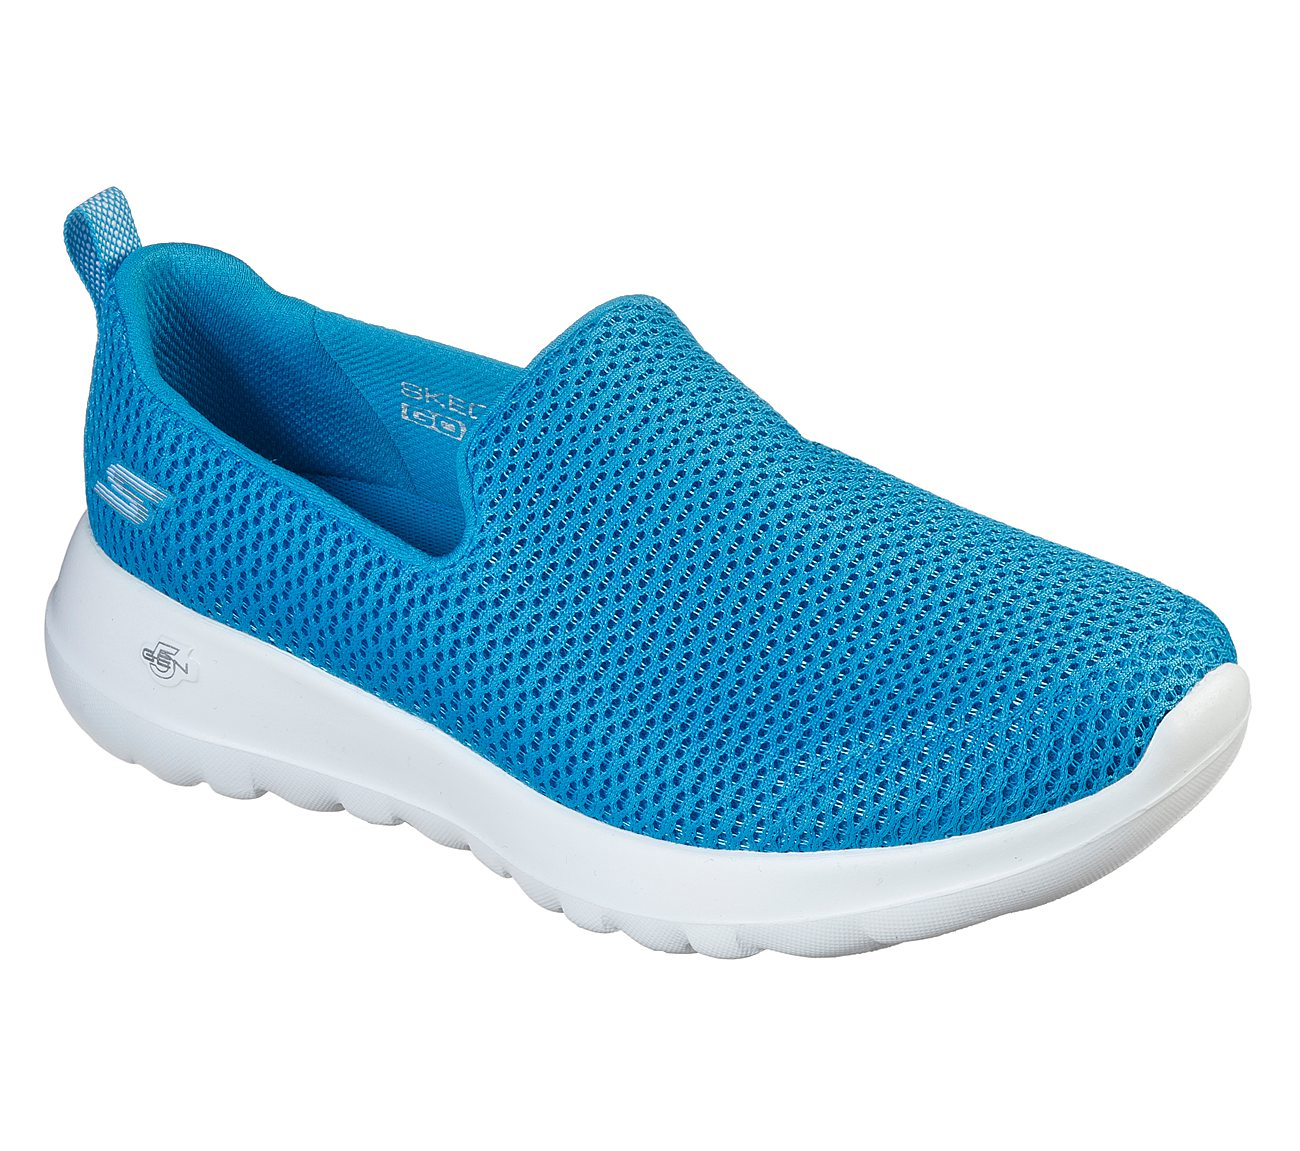 Skechers Go Walk 4 Propel | Buy Now £41.99 | All 6 Colours